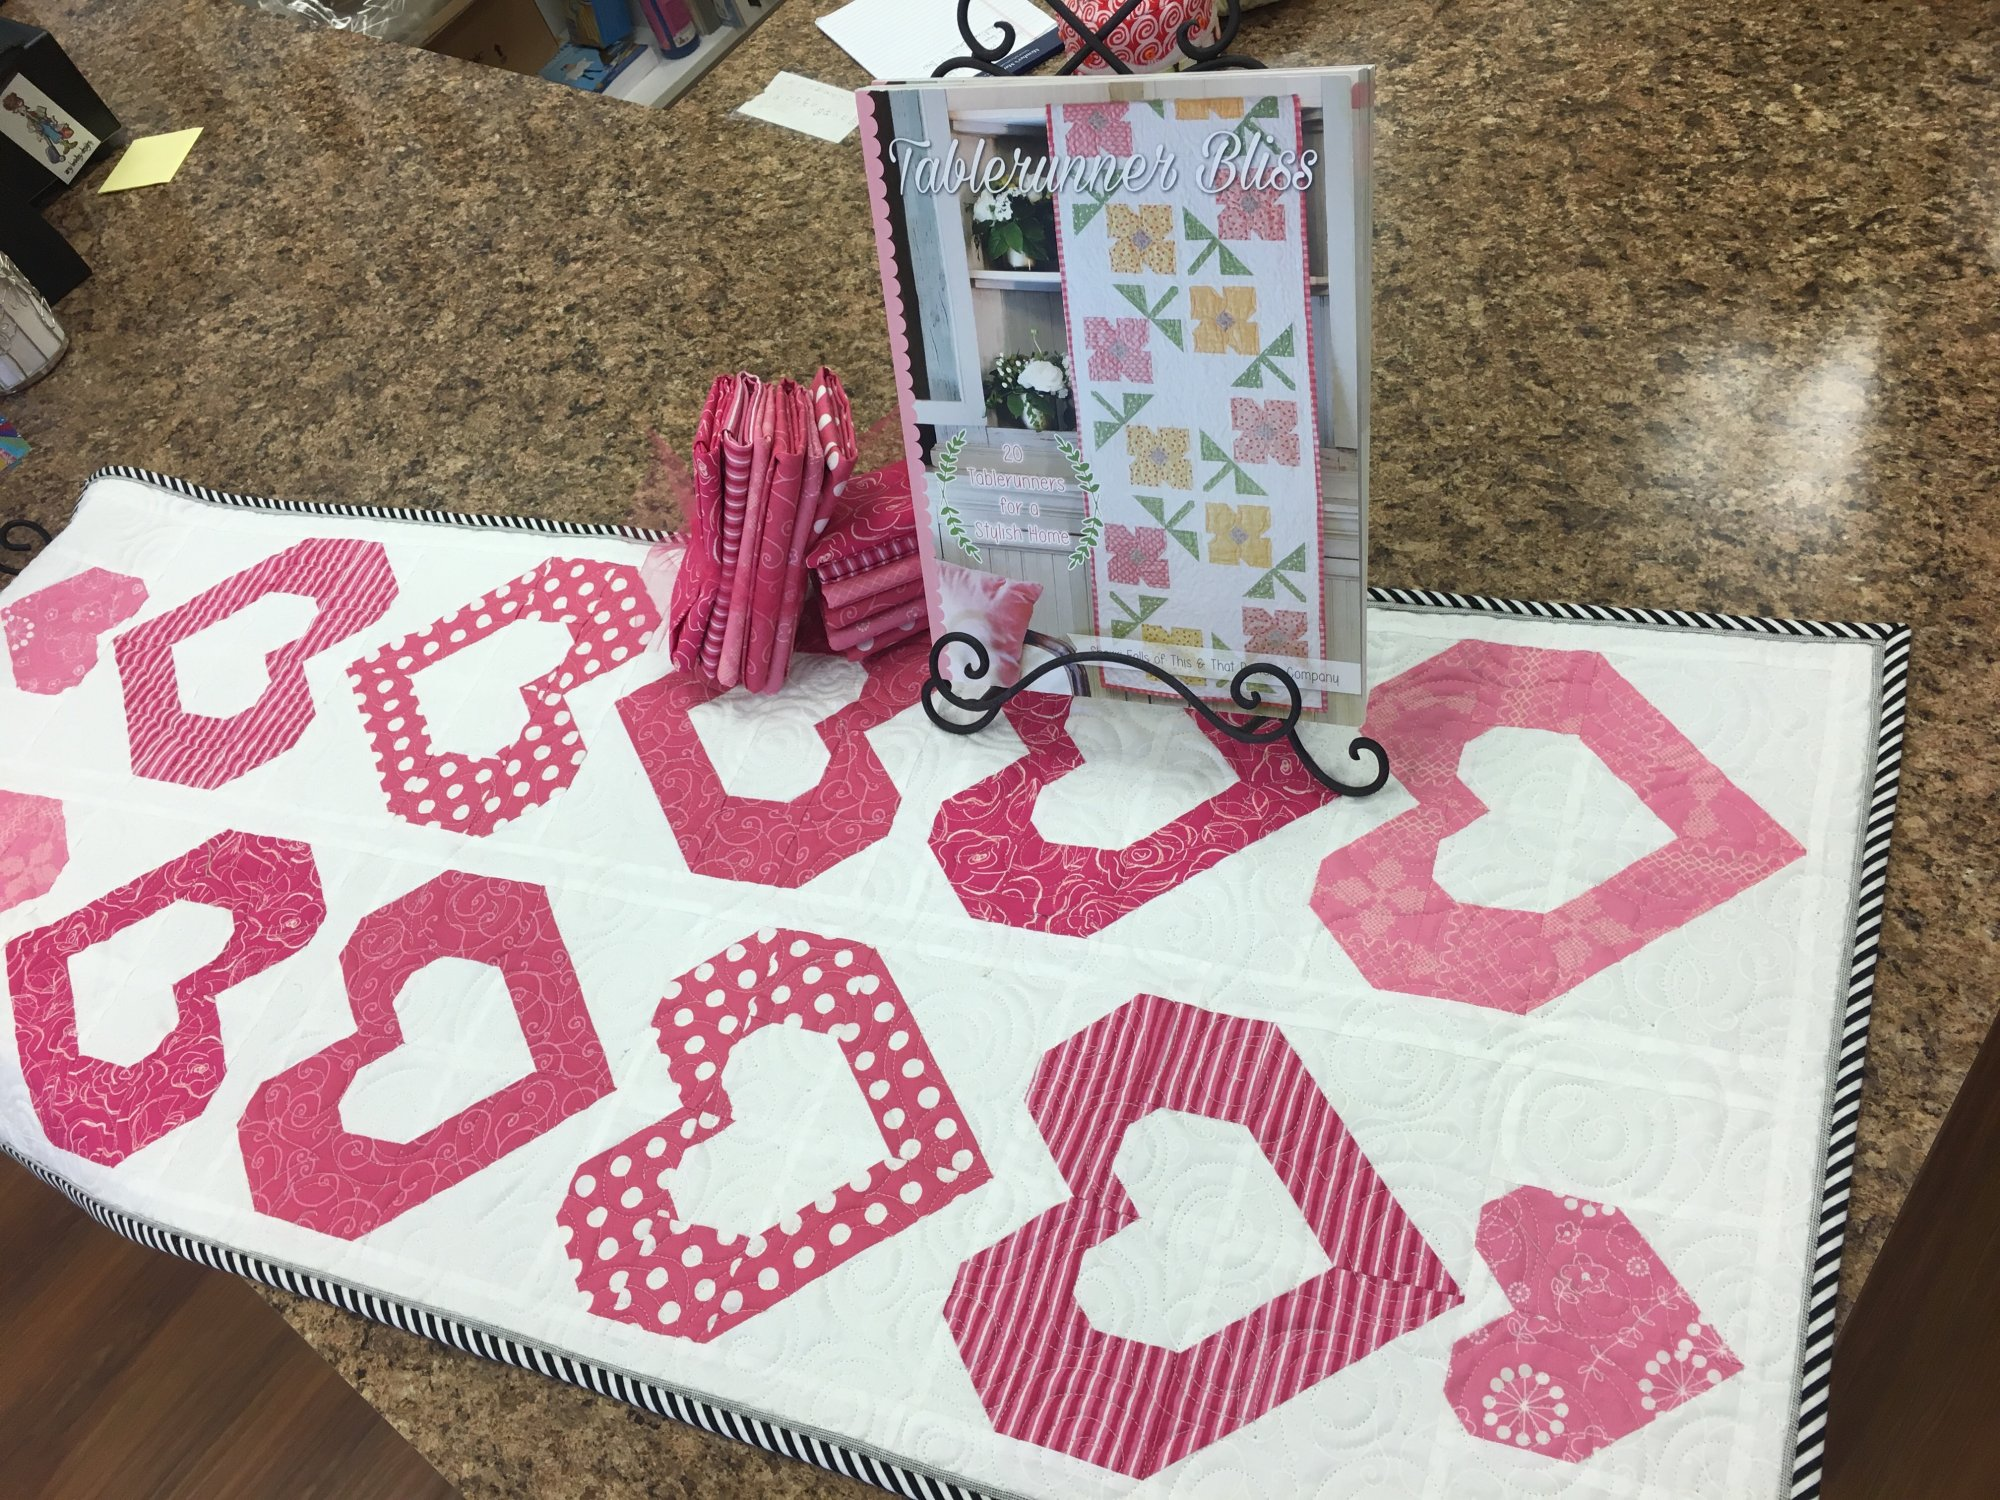 Lovely Table Runner/Kit